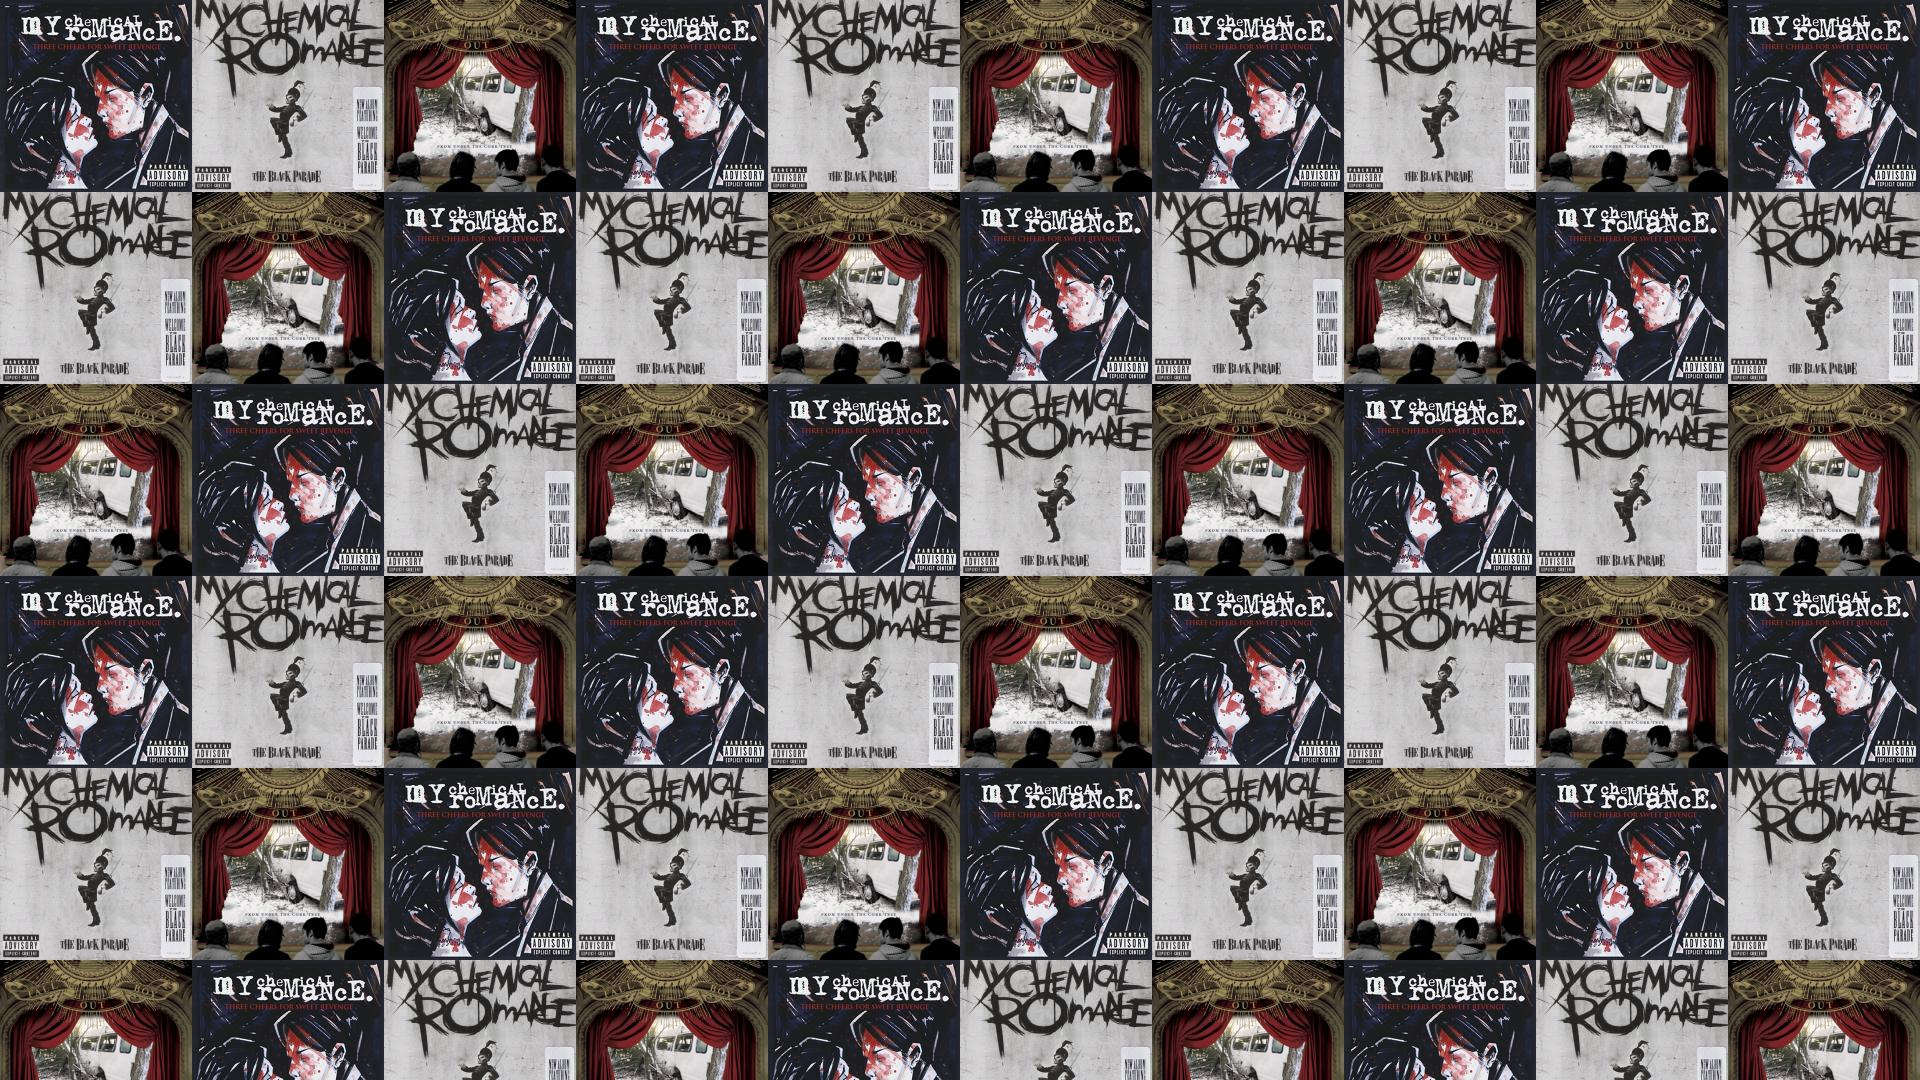 My Chemical Romance Three Cheers For Sweet Revenge Wallpaper